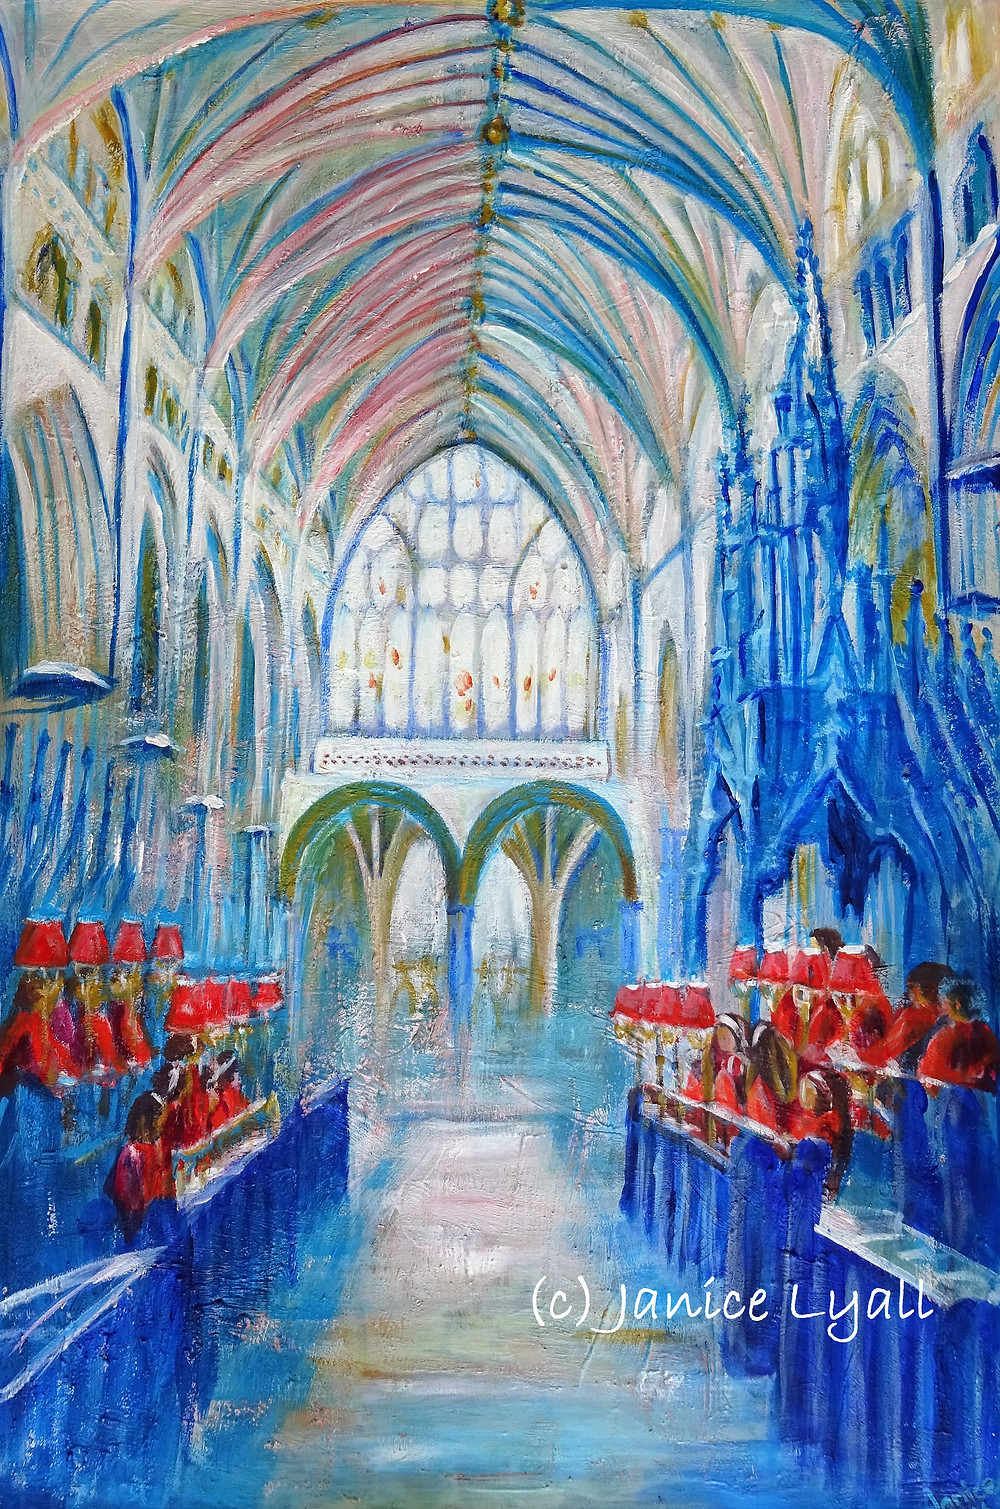 Choir Practice at Exeter Cathedral painting by Janice Lyall